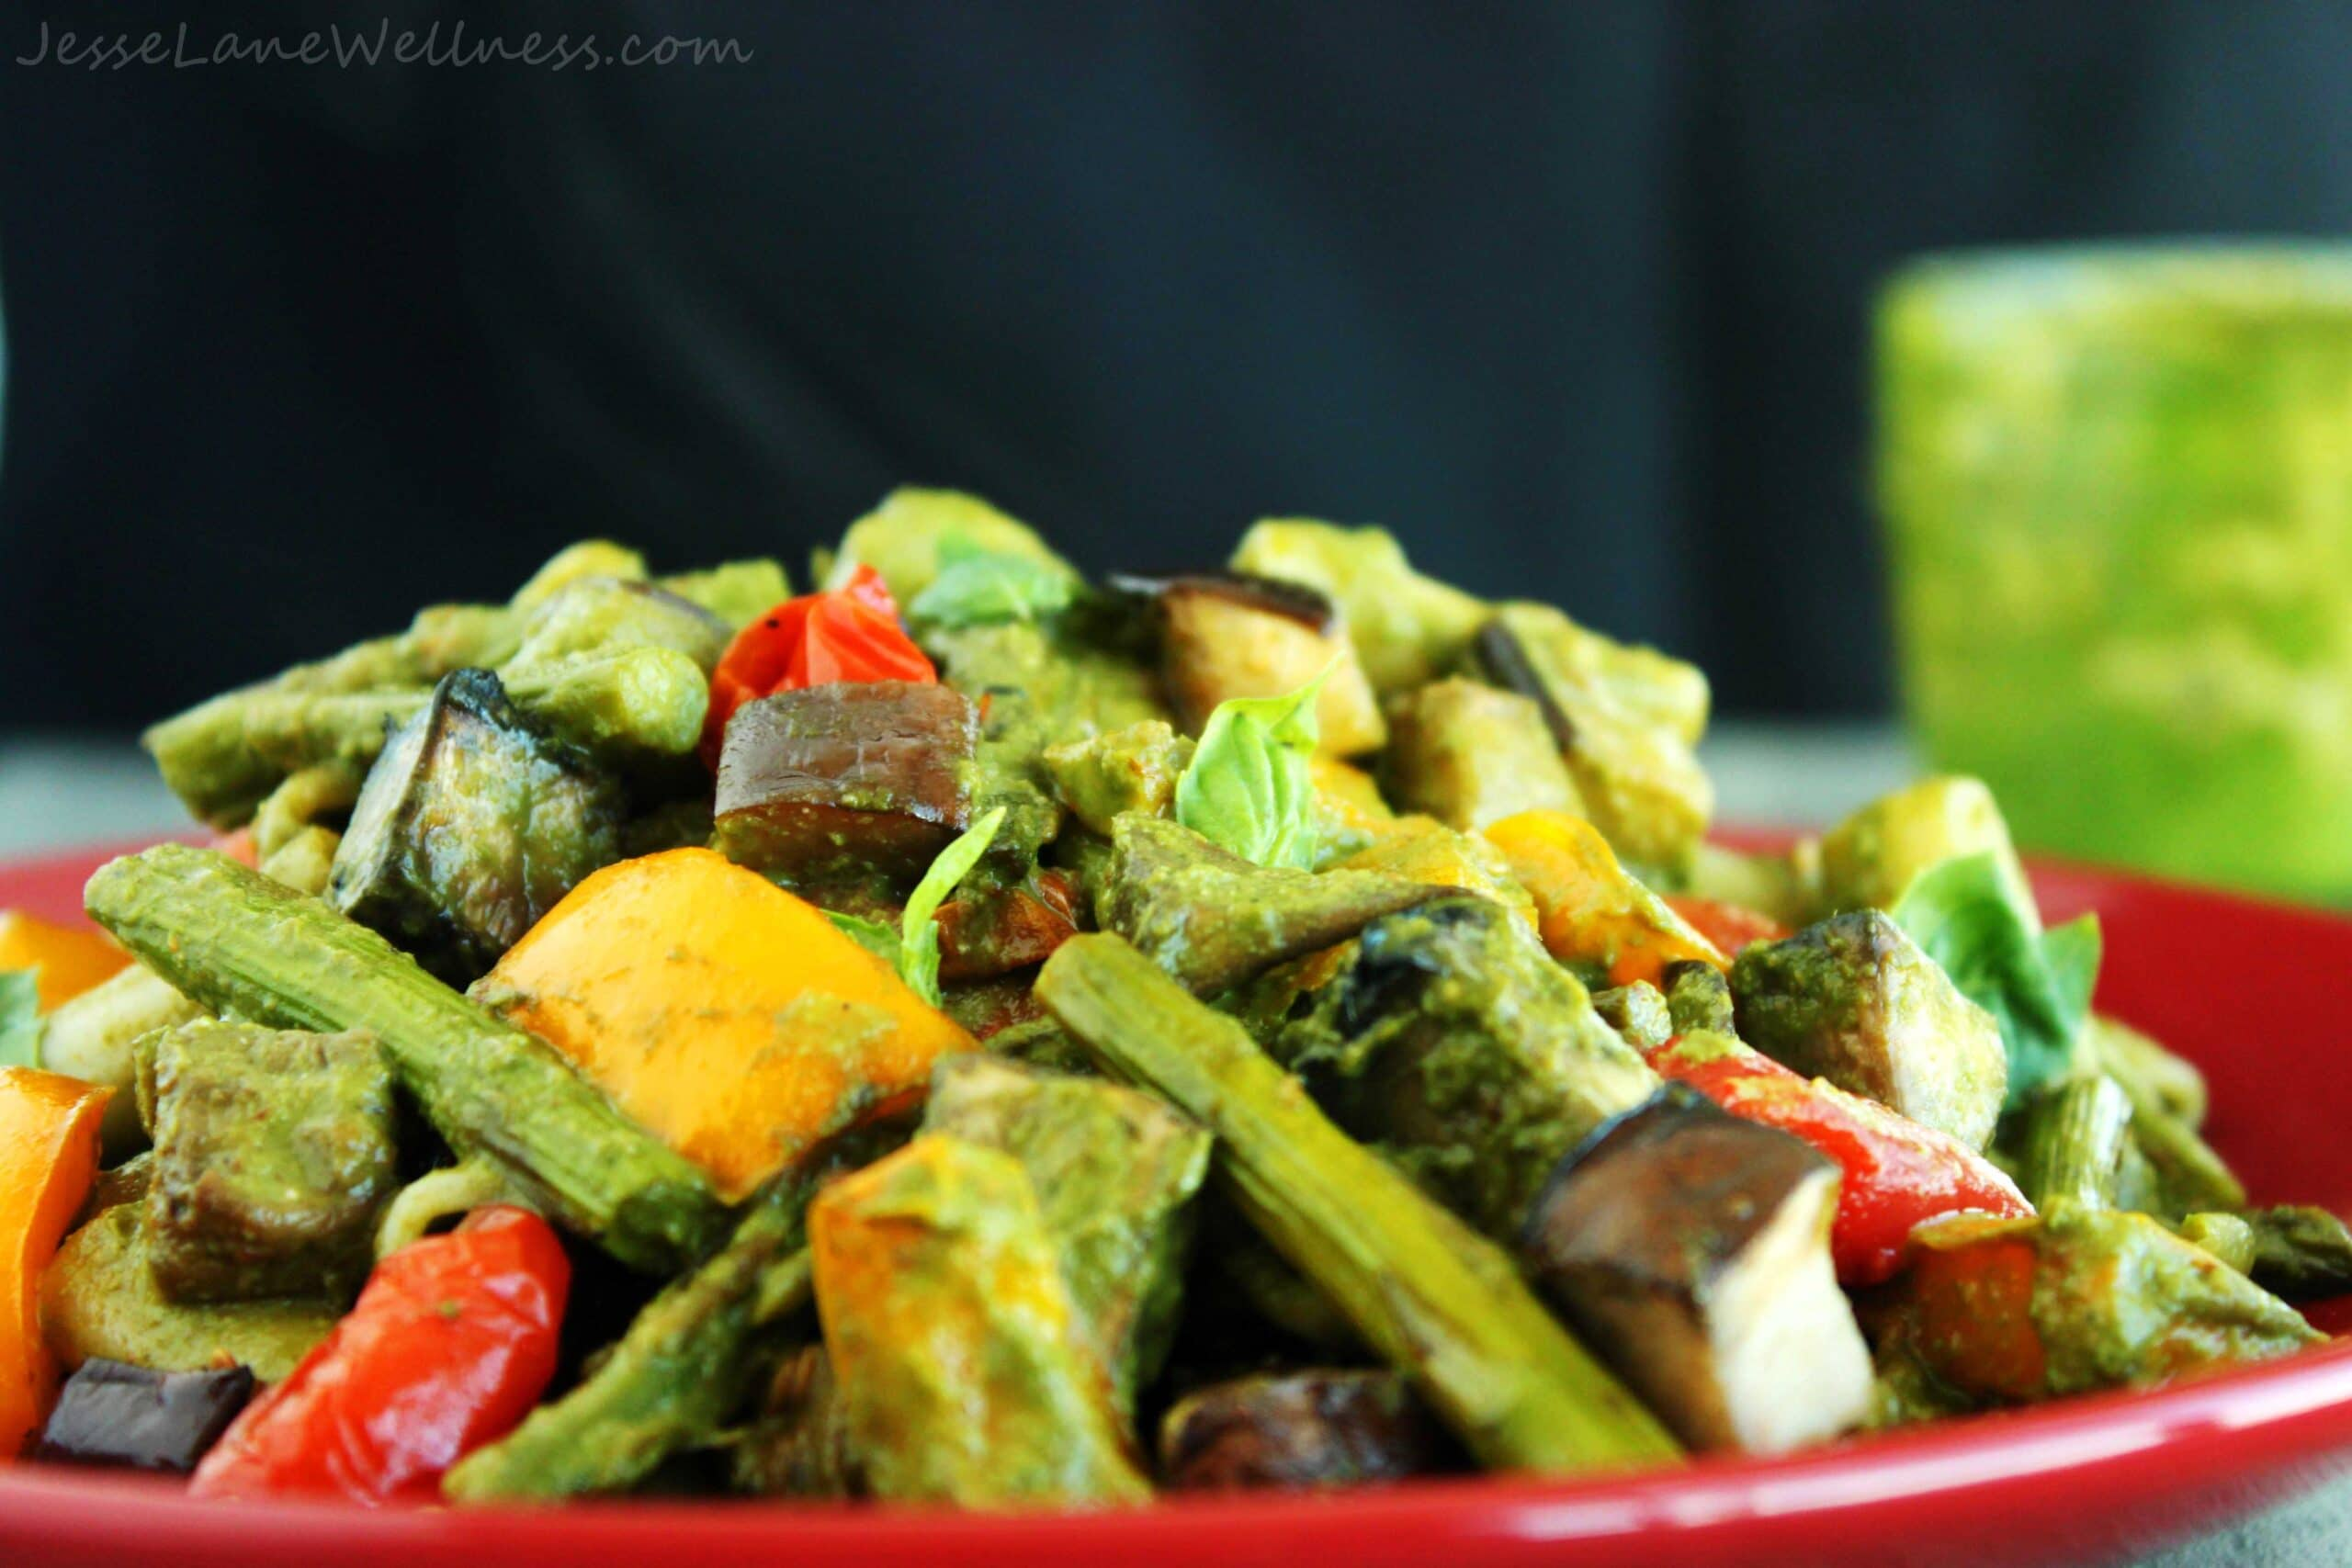 Pesto Primavera with Roasted Veggies y @JesseLWellness #vegan #veggies